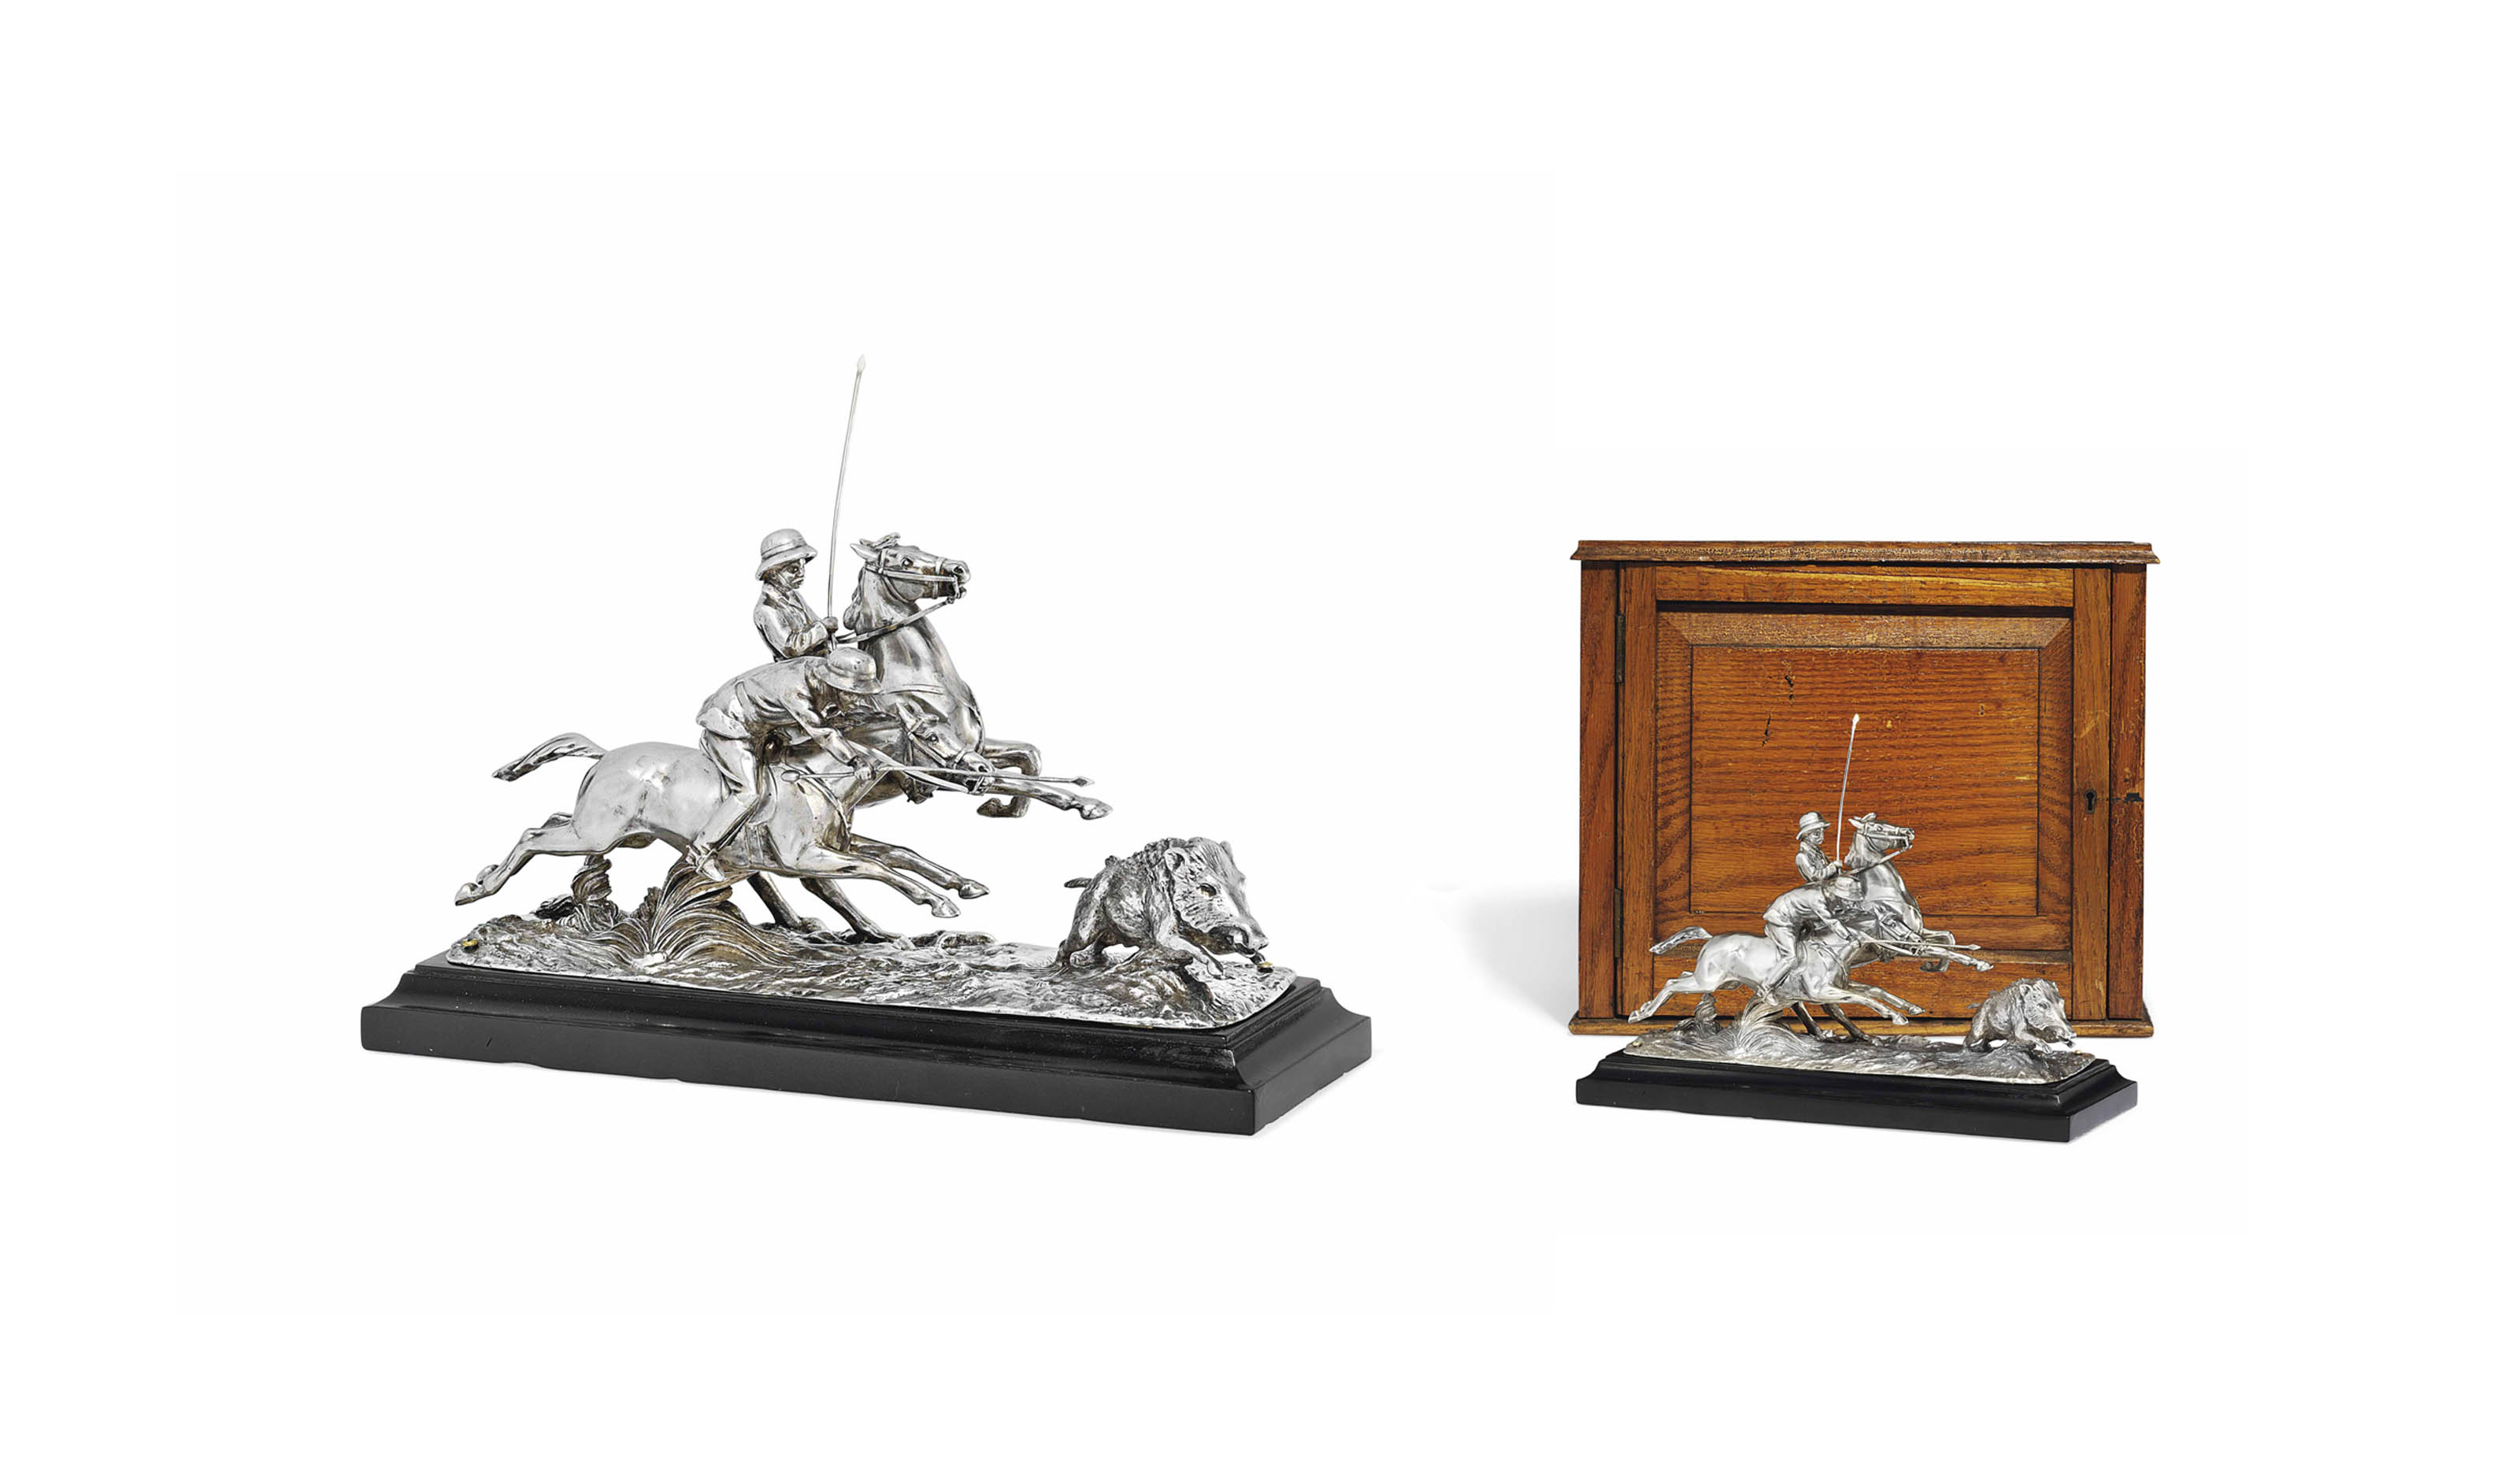 A GEORGE V SILVER CENTREPIECE IN THE FORM OF A BOAR HUNT